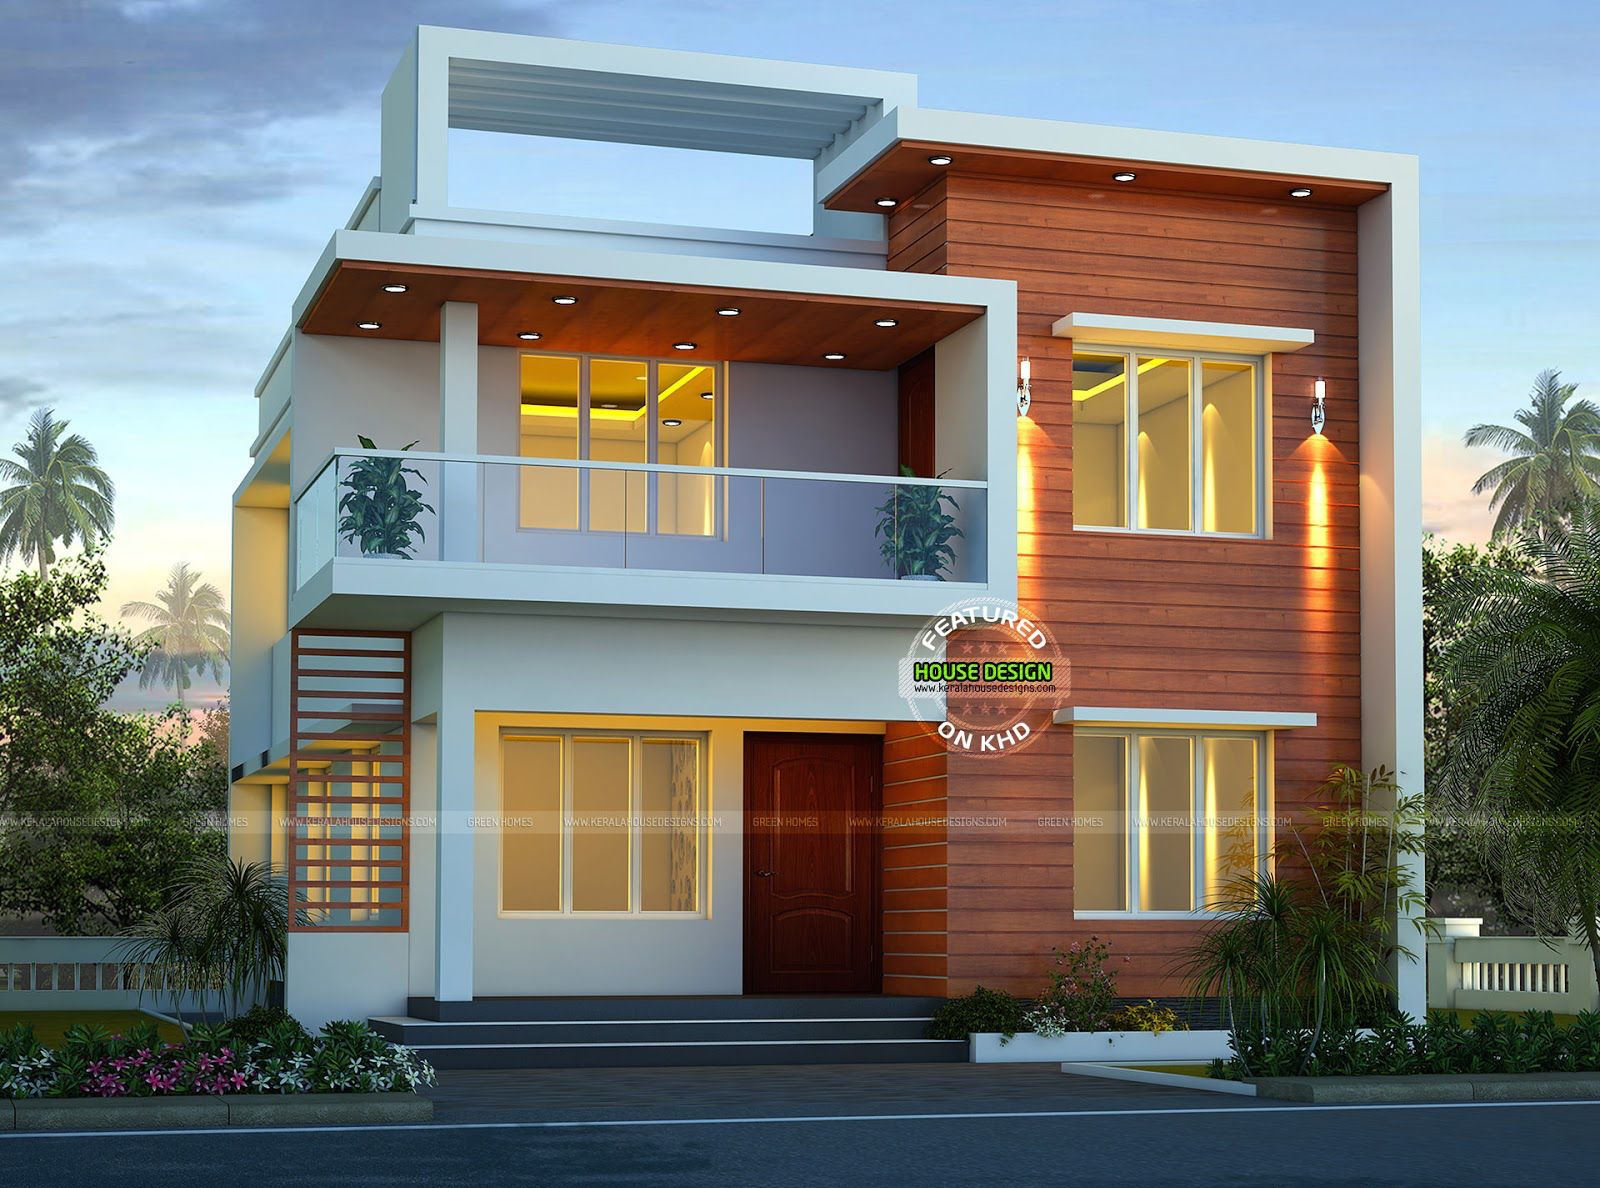 This Small Modern Double Storey Home Has Total Area Of